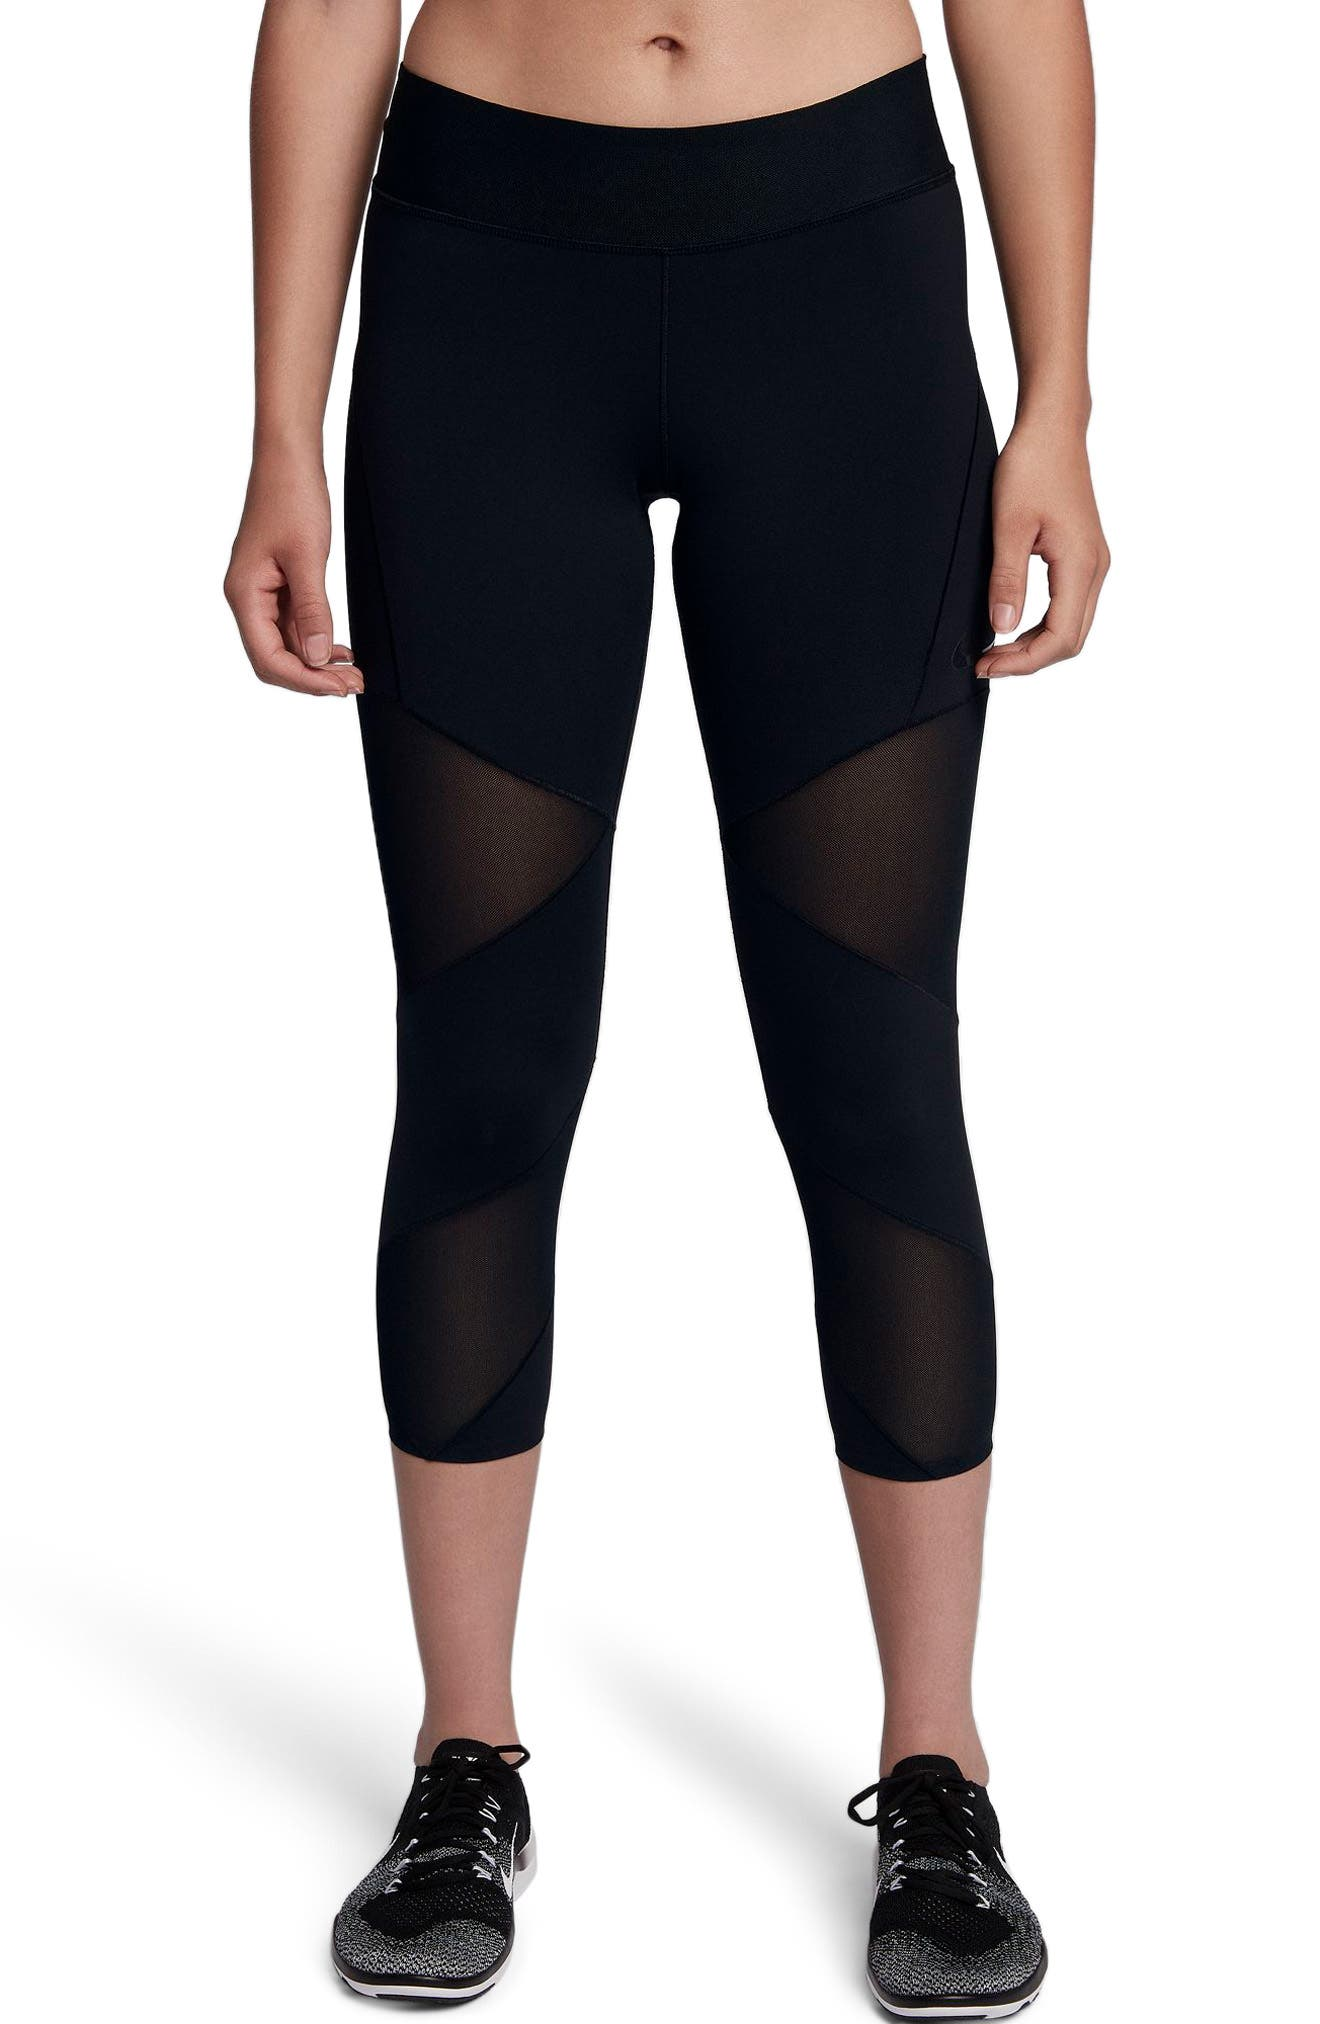 Fly Lux Crop Leggings,                         Main,                         color, BLACK/ CLEAR